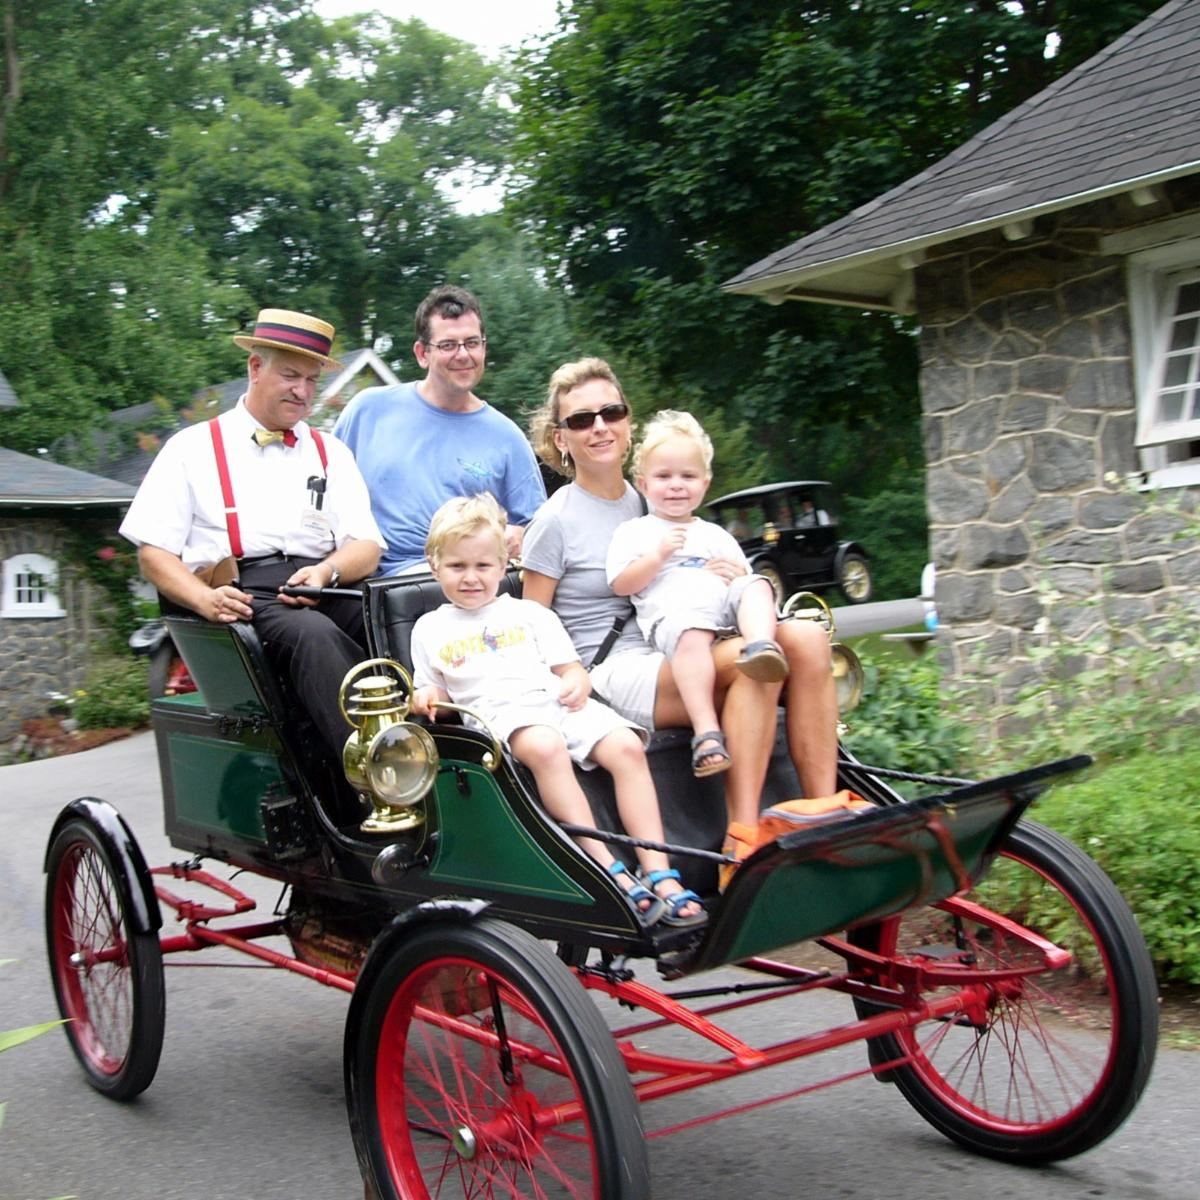 Family unit of 4 riding in a green and red antique car with a man in period clothes driving the car